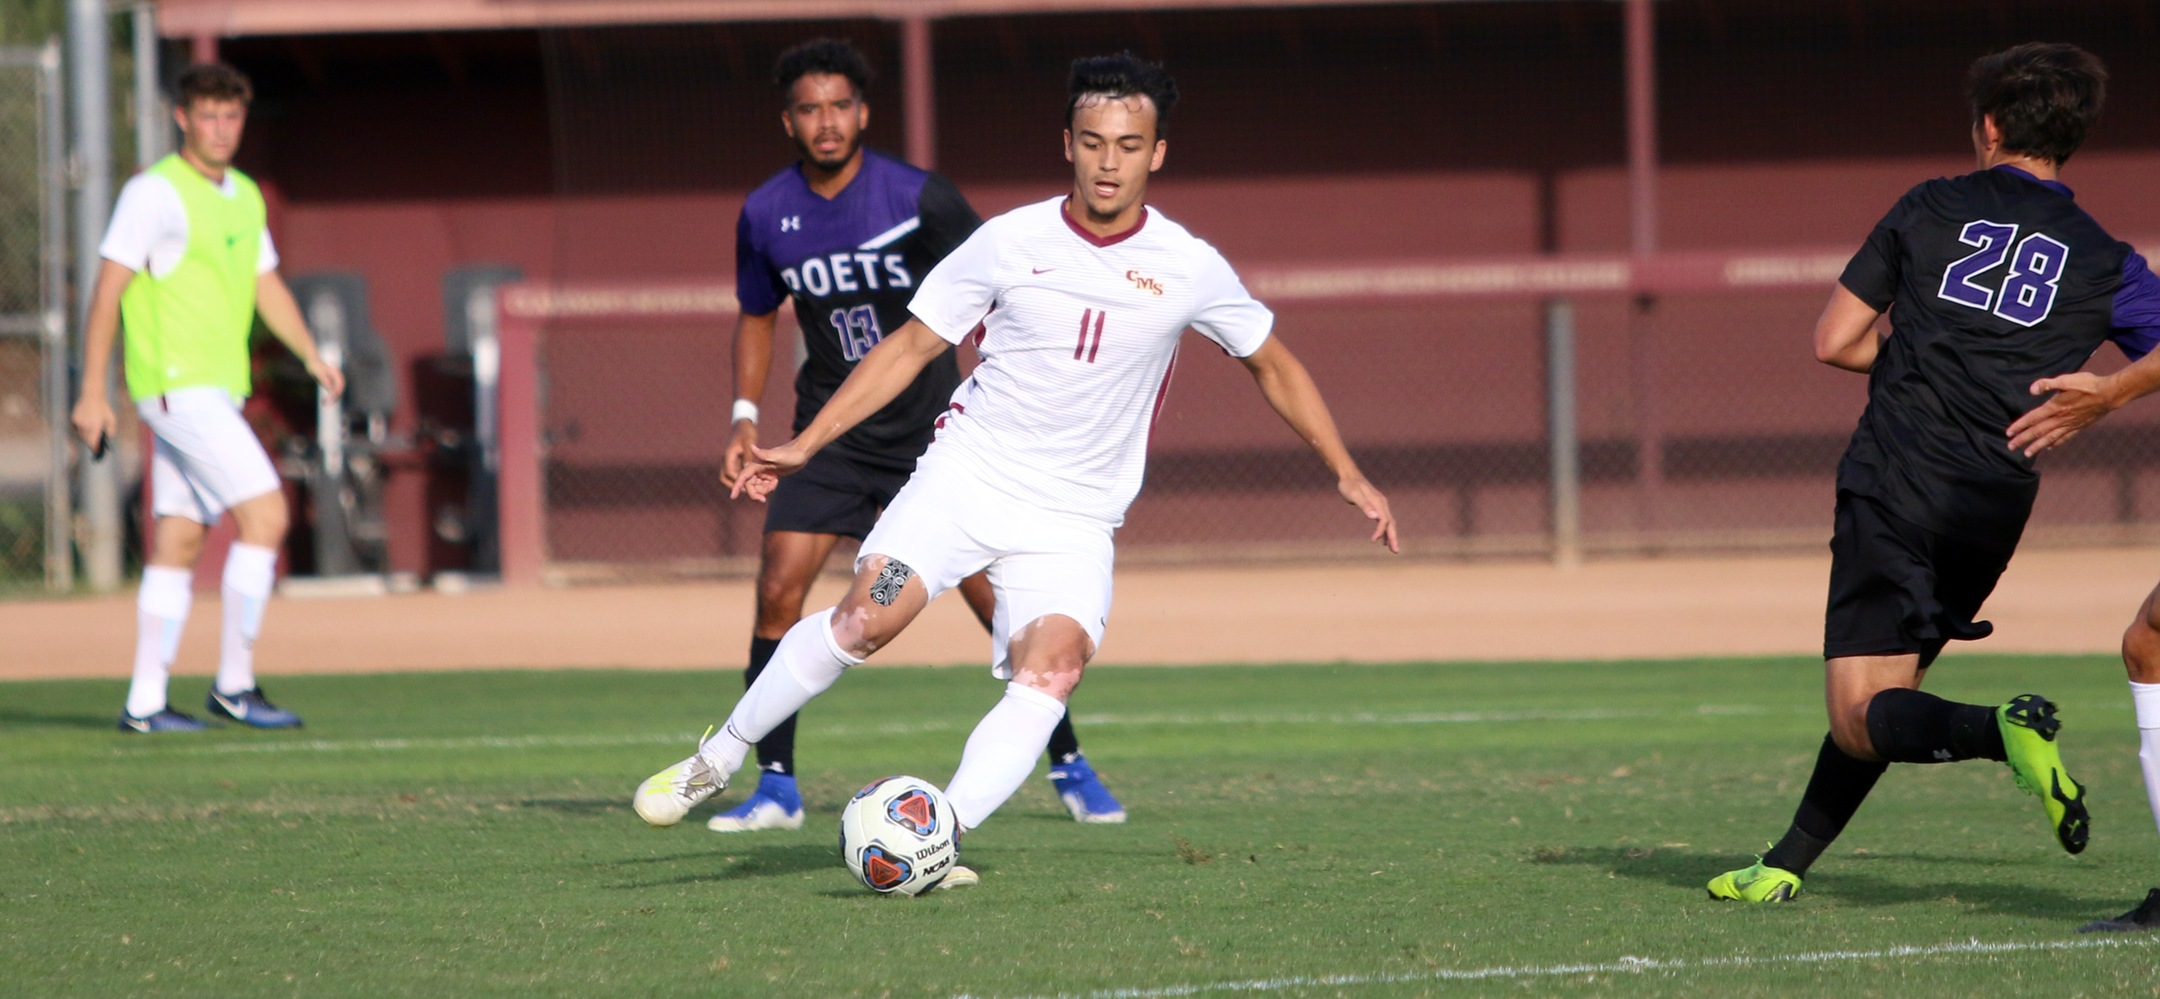 Daniel Rohde's acrobatic goal in the 86th minute gave CMS a 2-2 tie with Redlands.